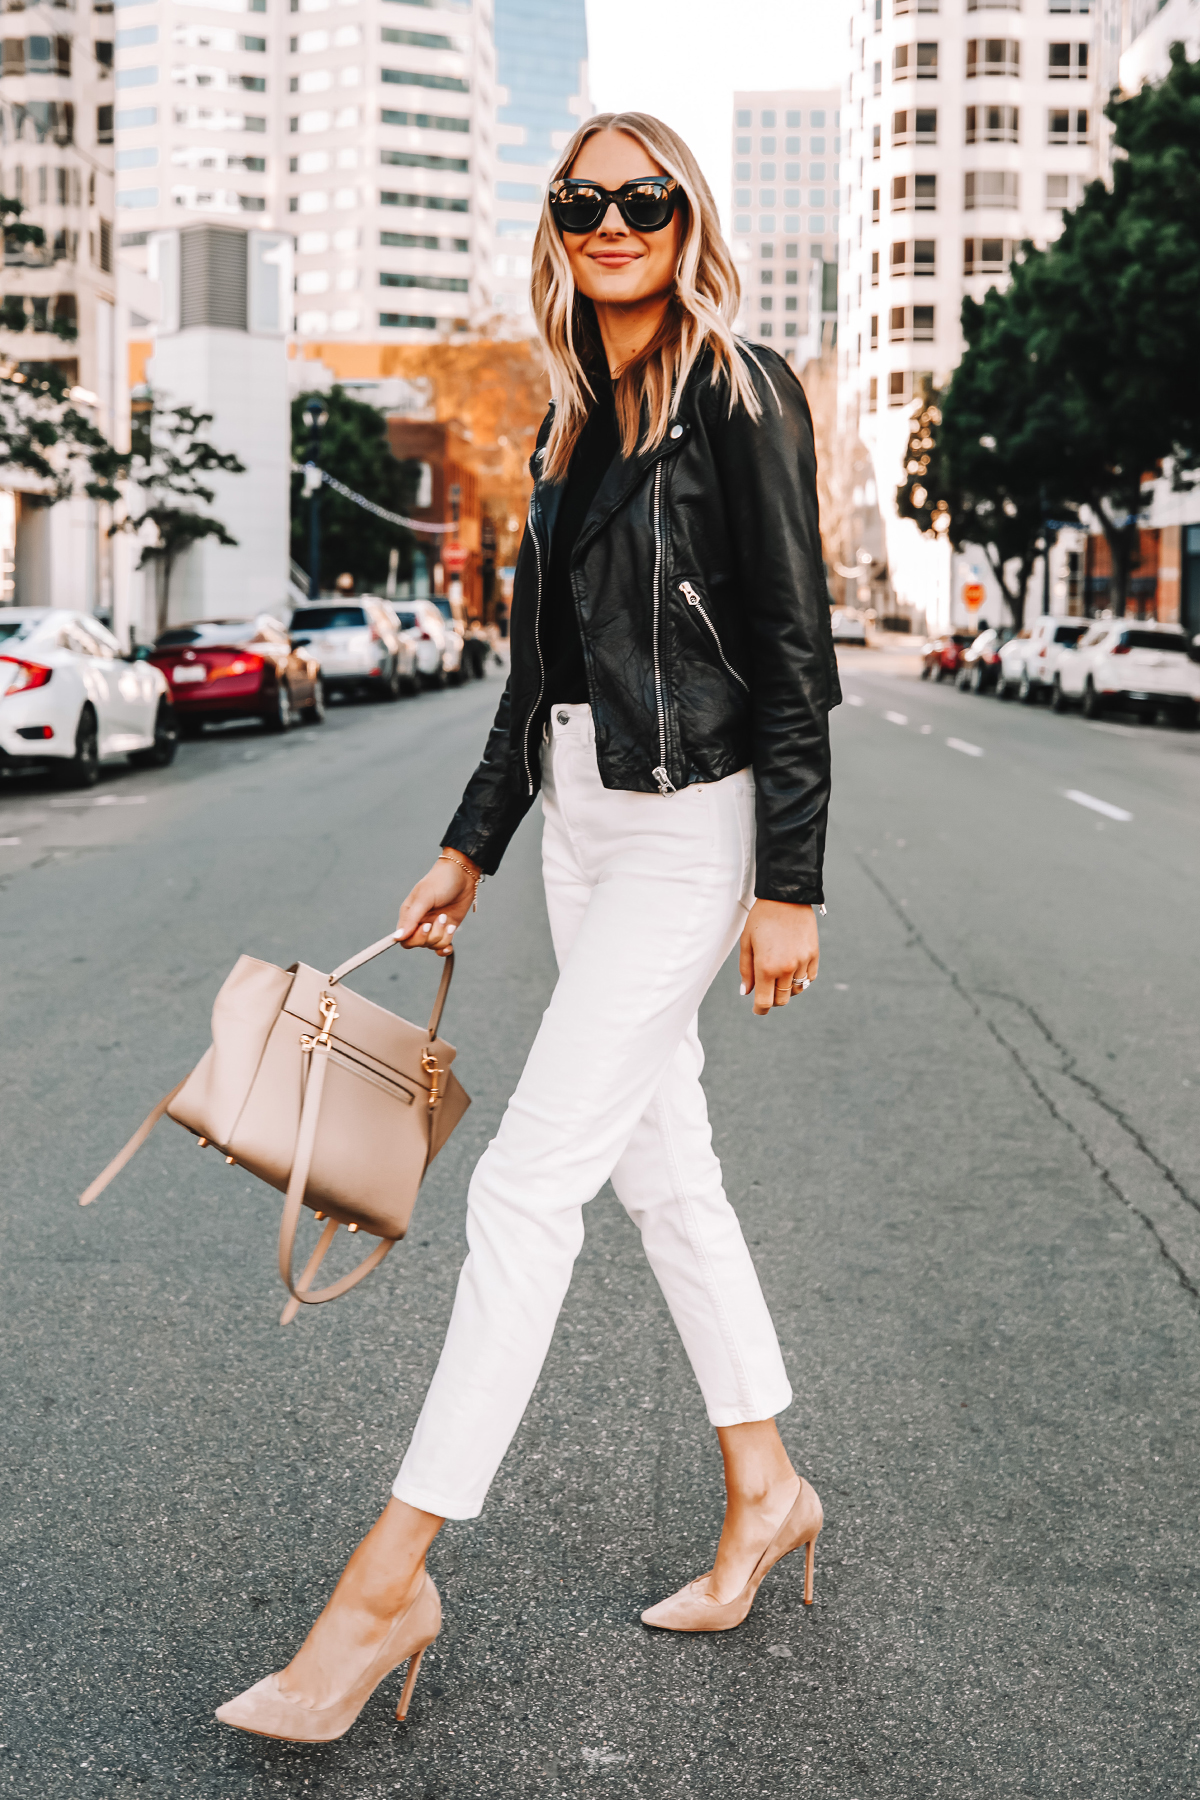 Fashion Jackson Wearing Madewell Black Leather Jacket Everlane White Jeans Nude Pumps Celine Belt Bag